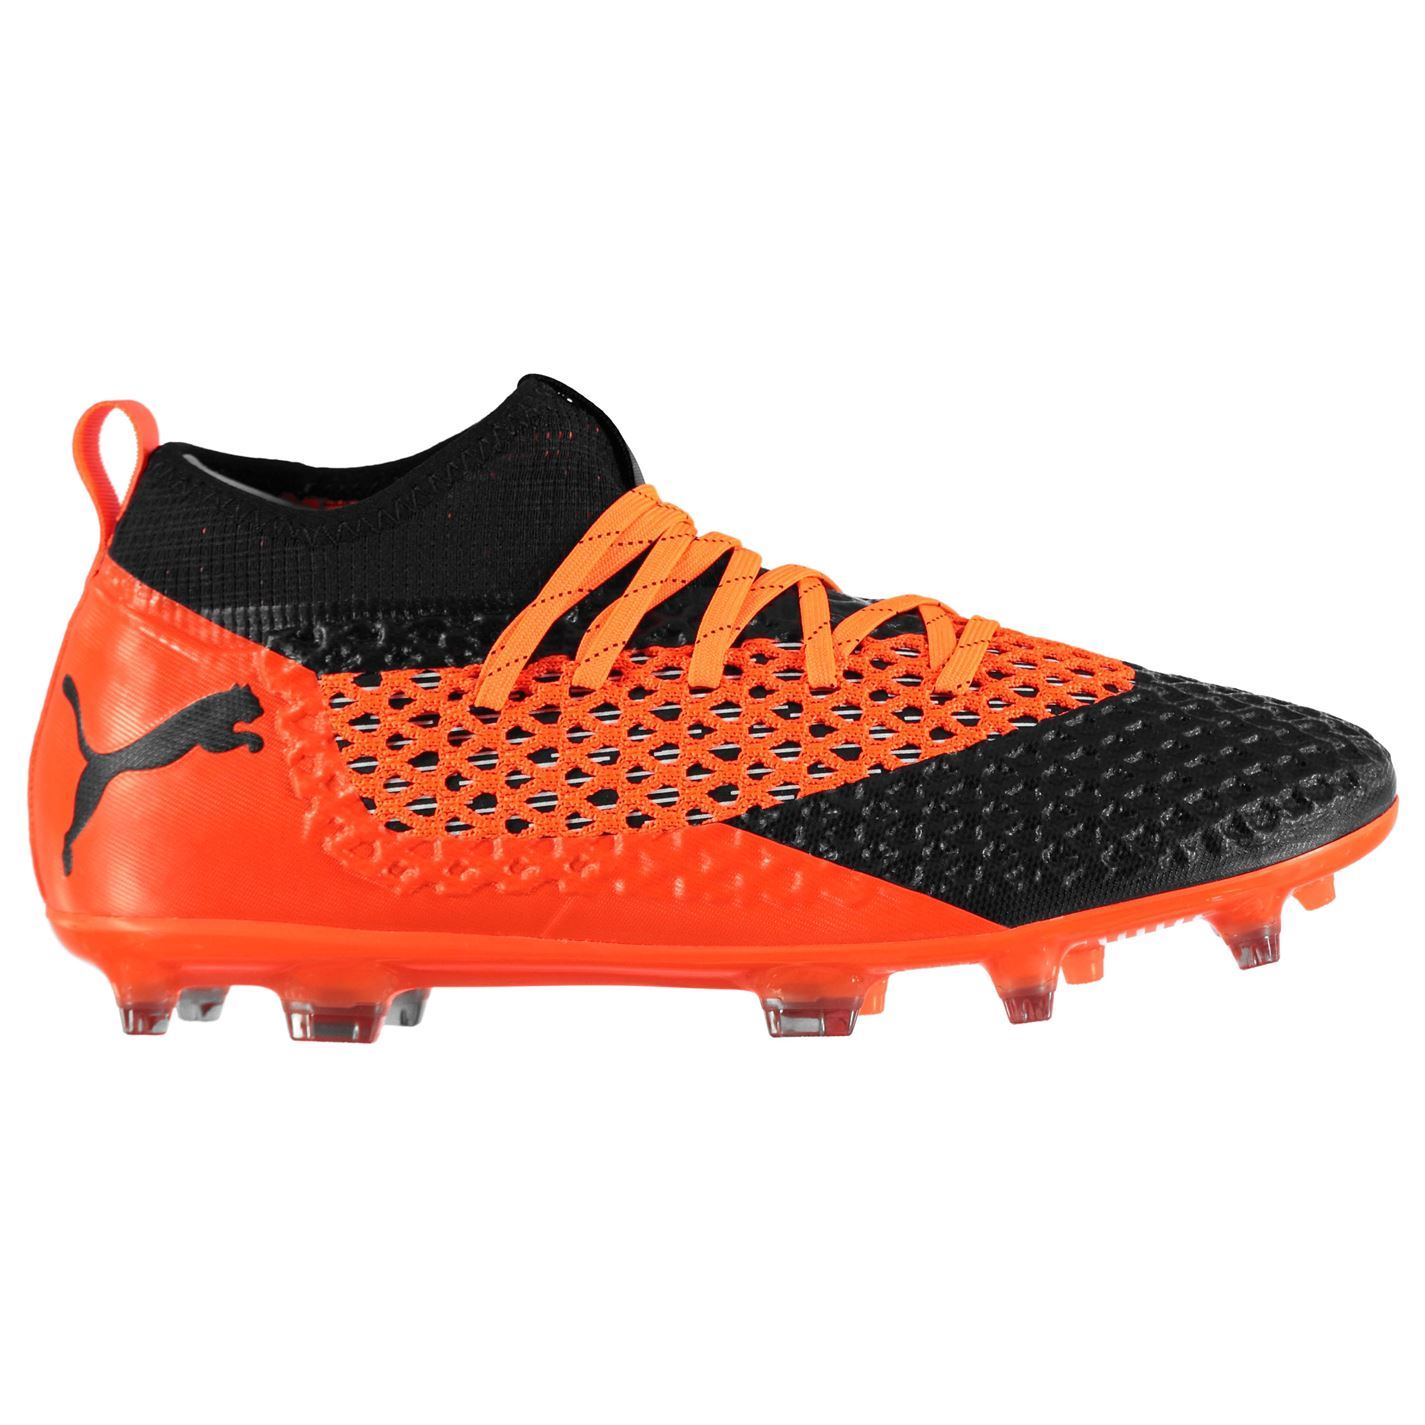 ... Puma Future 2.2 FG Firm Ground Football Boots Mens Soccer Shoes Cleats 6f82f771e